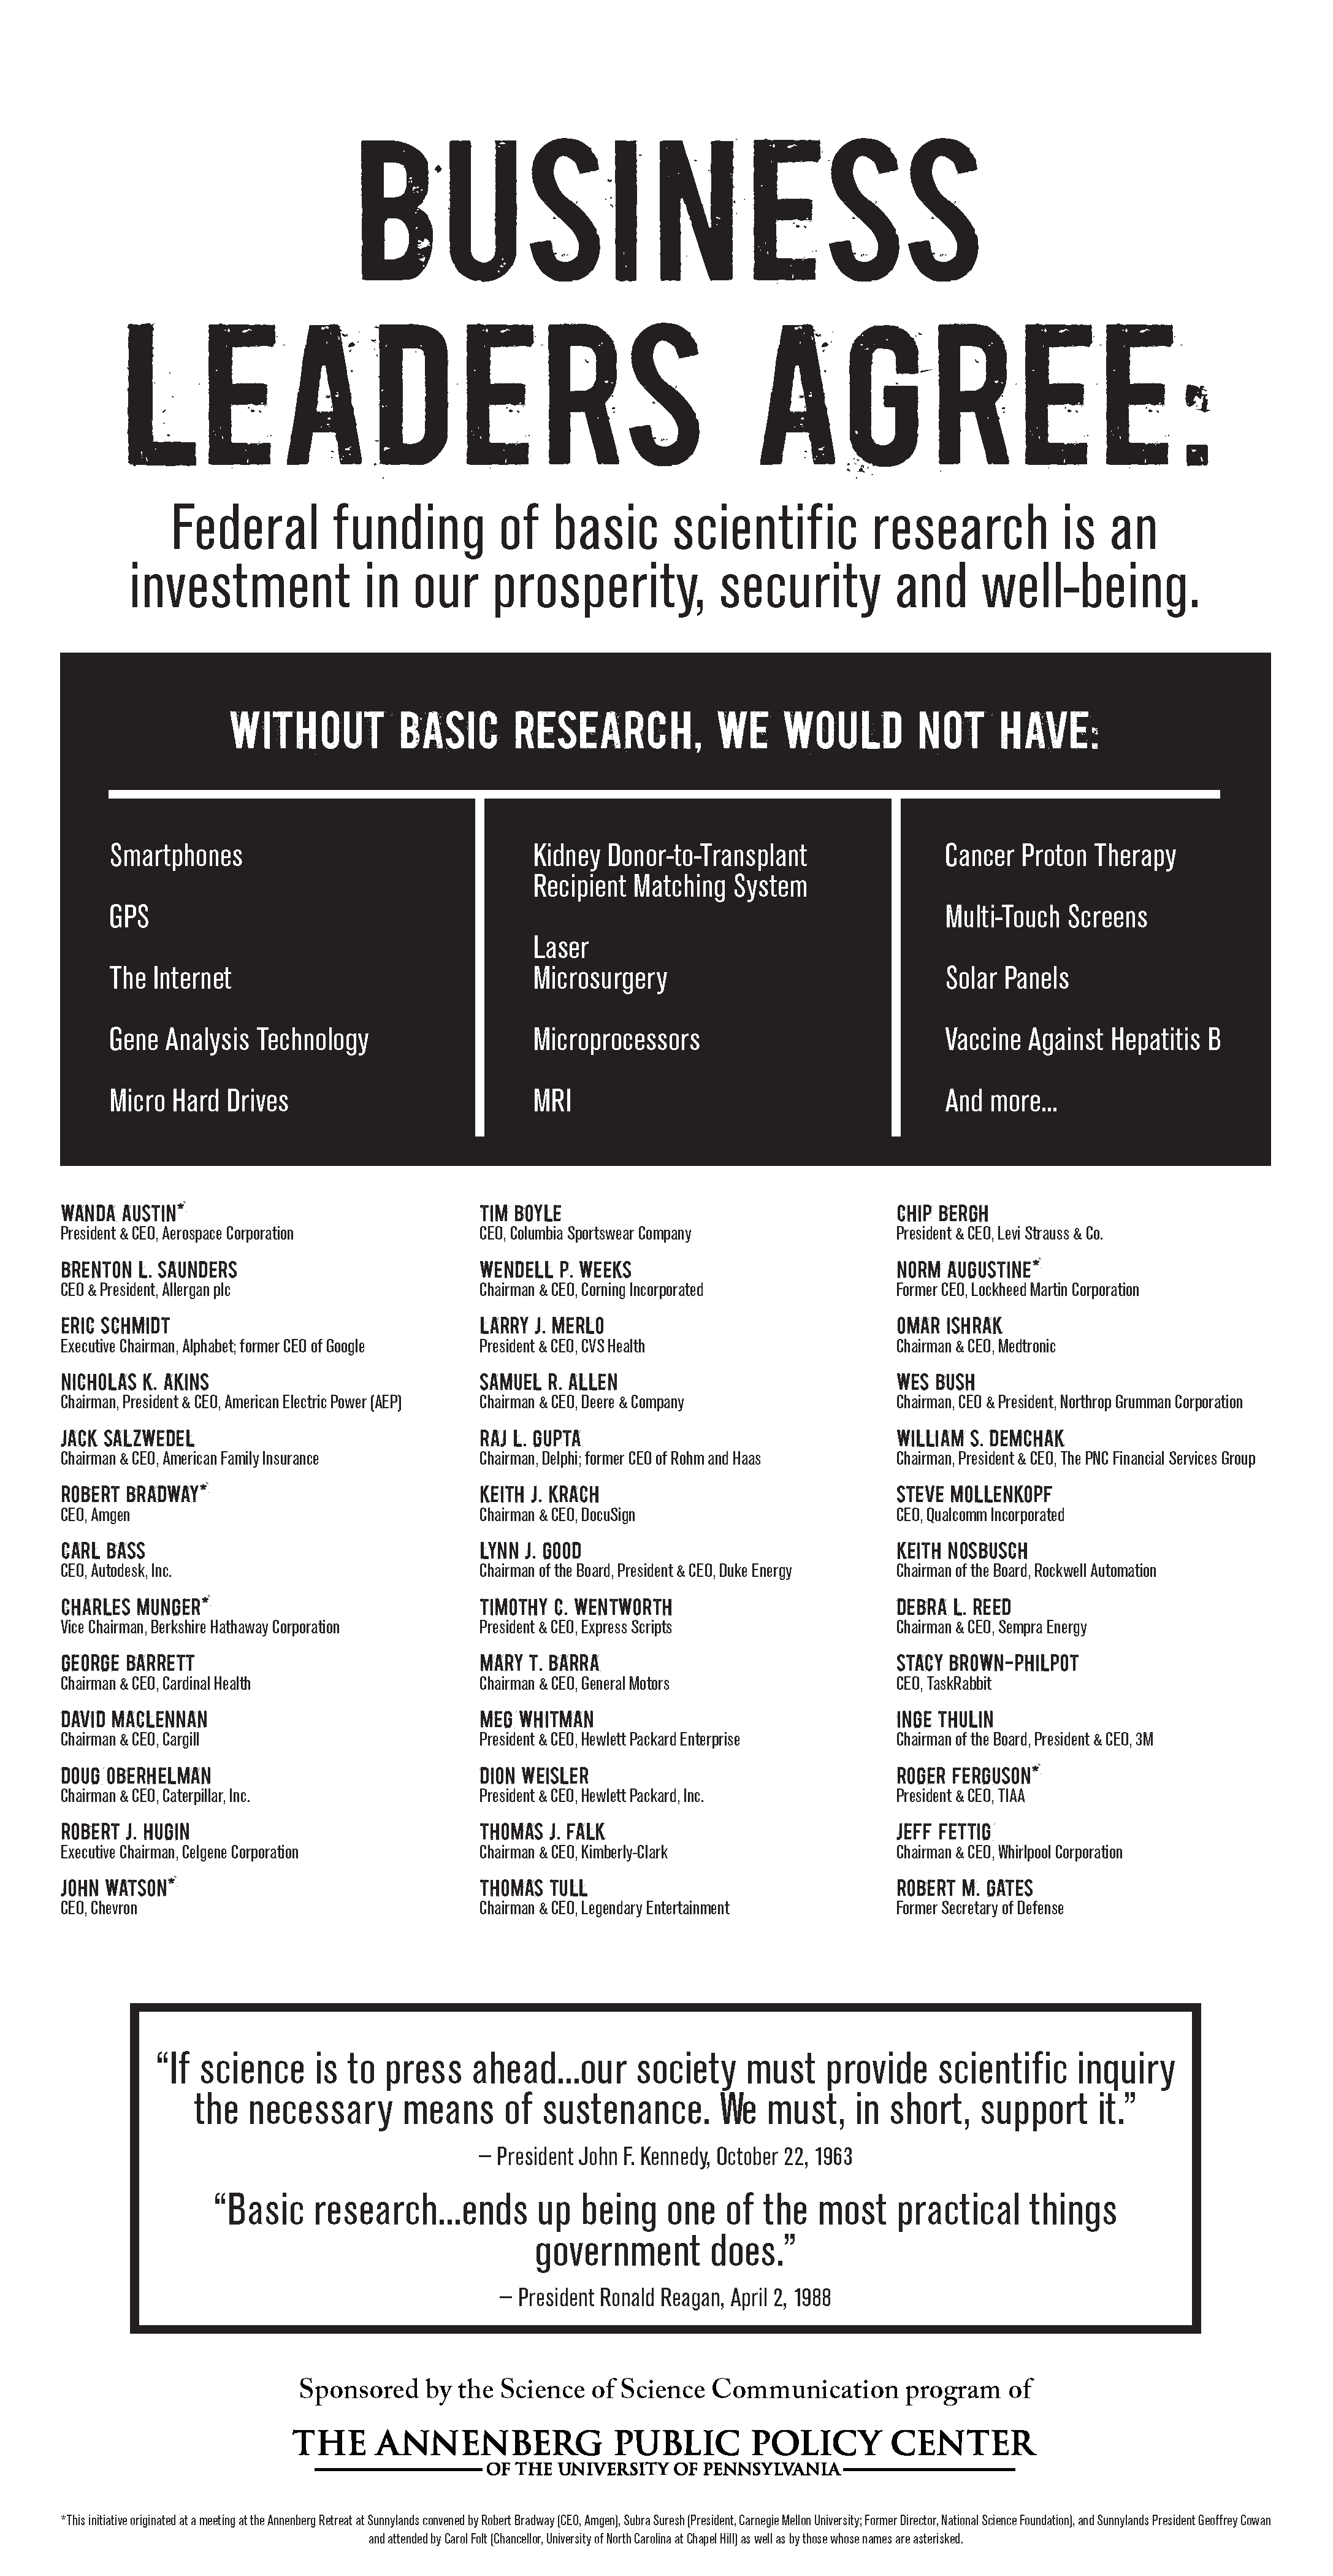 Business leaders for basic scientific research ad.